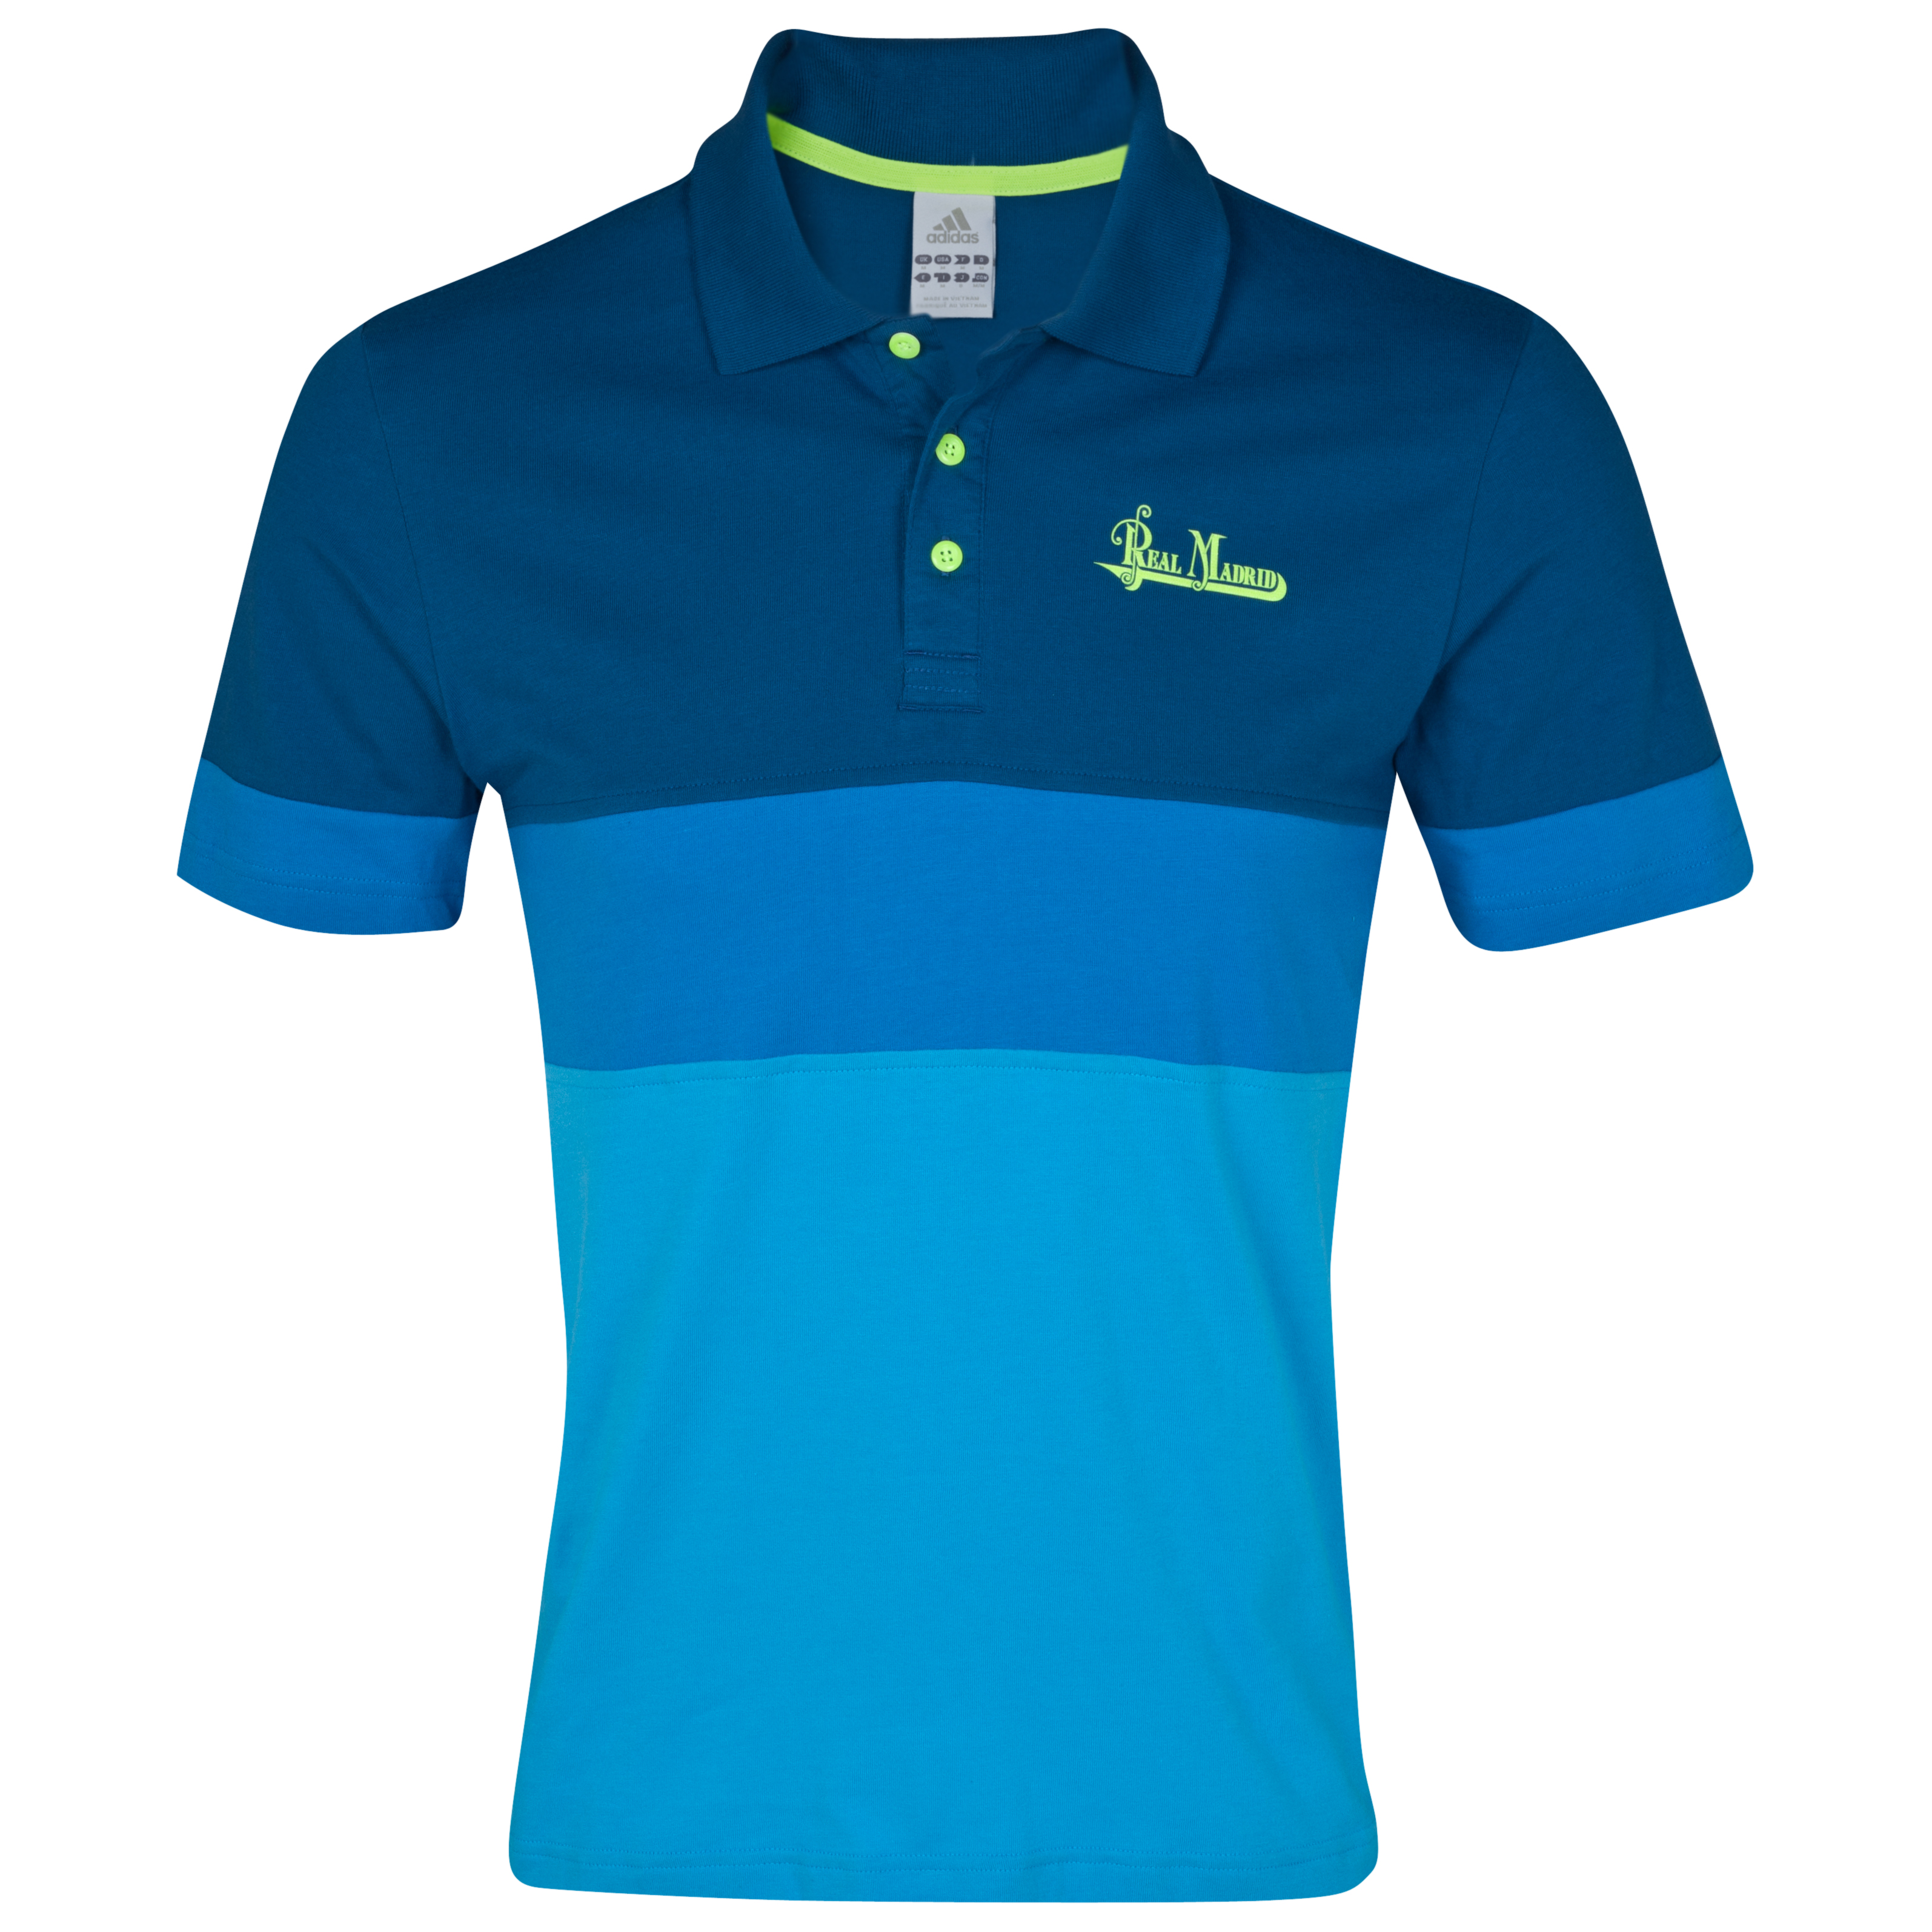 Real Madrid Urban Polo - Cyan/Lone Blue/Electricity